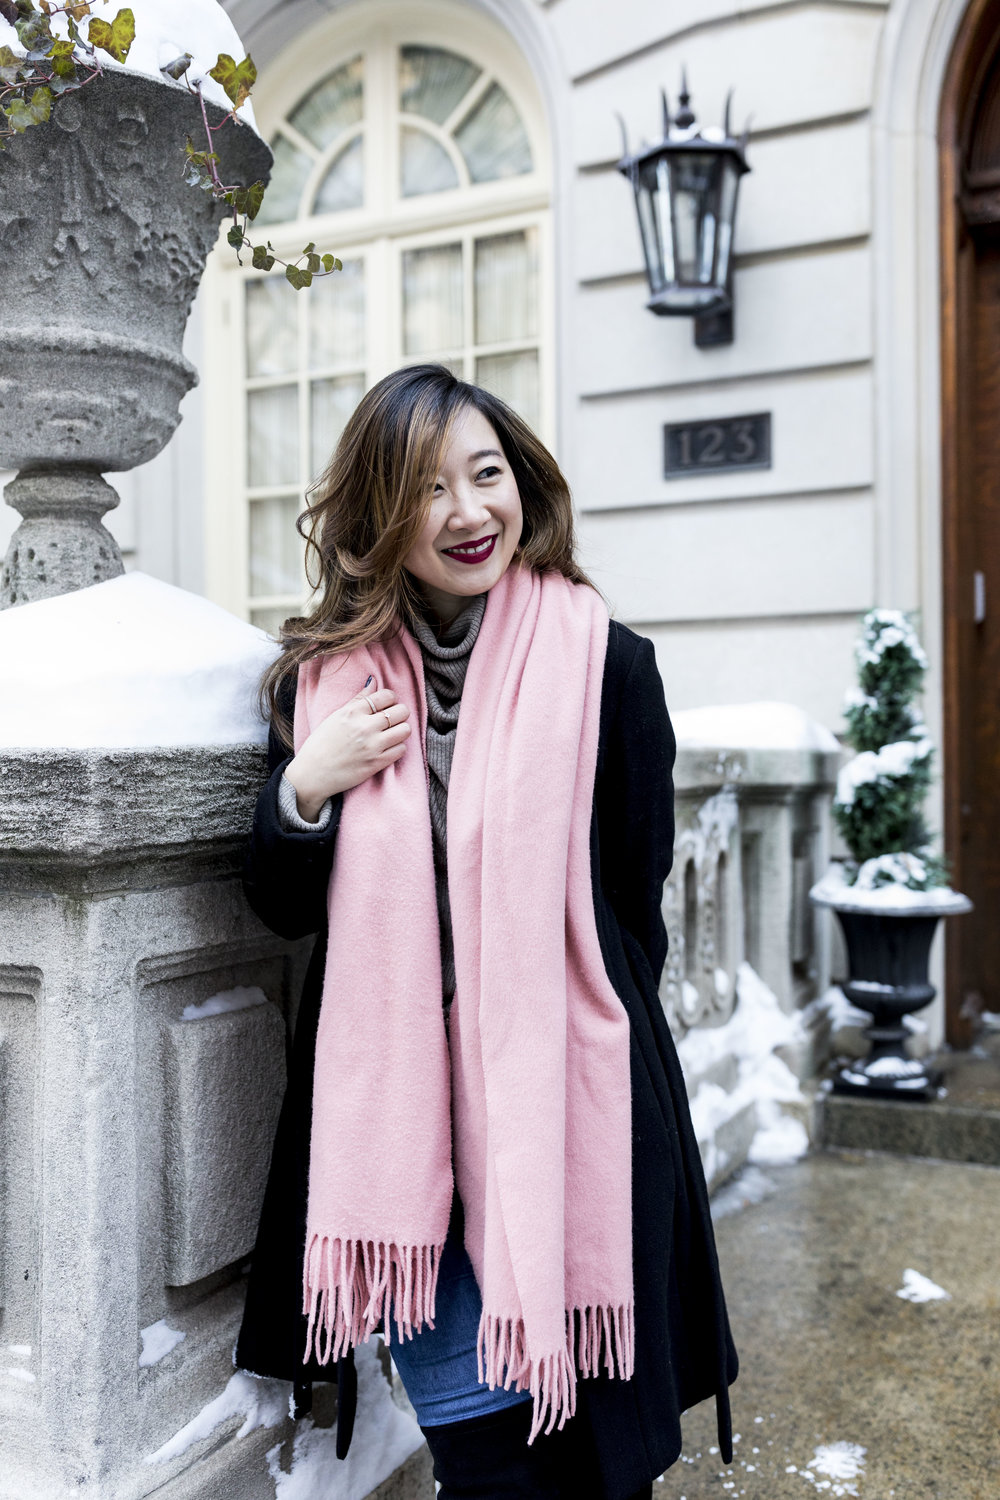 The scarf is from Acne Studios. Photo taken by Ashley Gallerani.